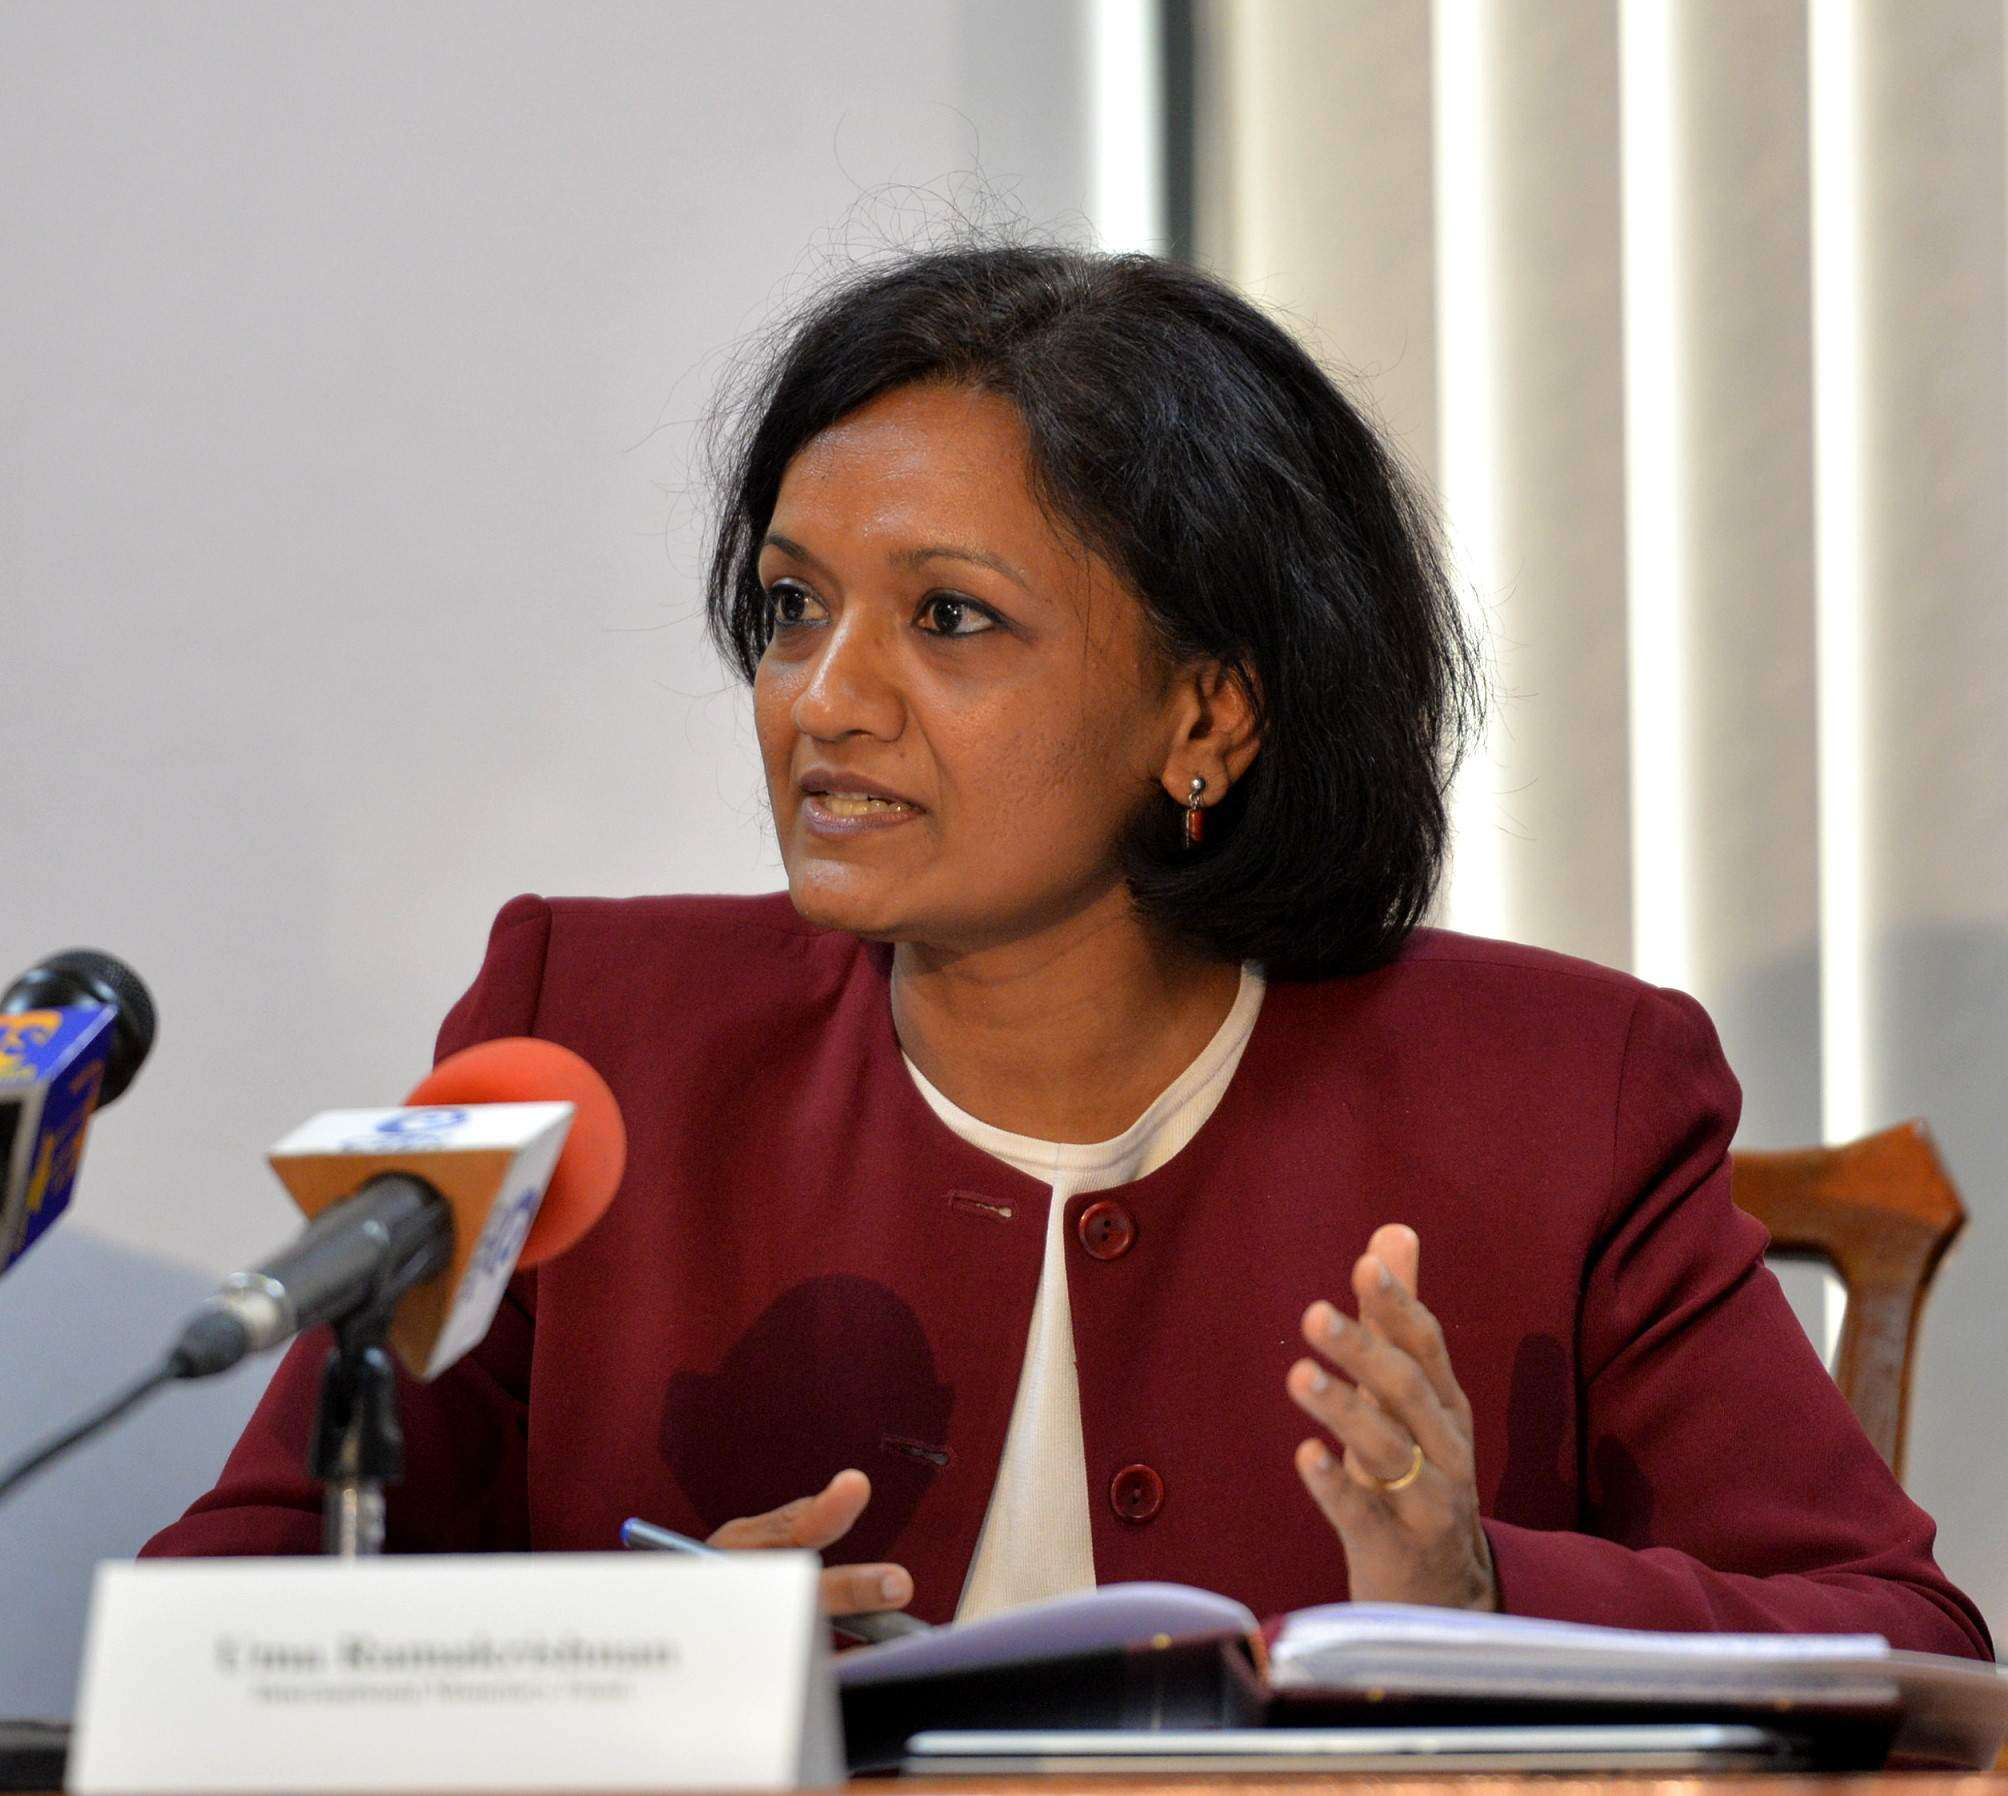 Jamaica Has Received More Technical Assistance from the IMF than Any Other Country in the Western Hemisphere